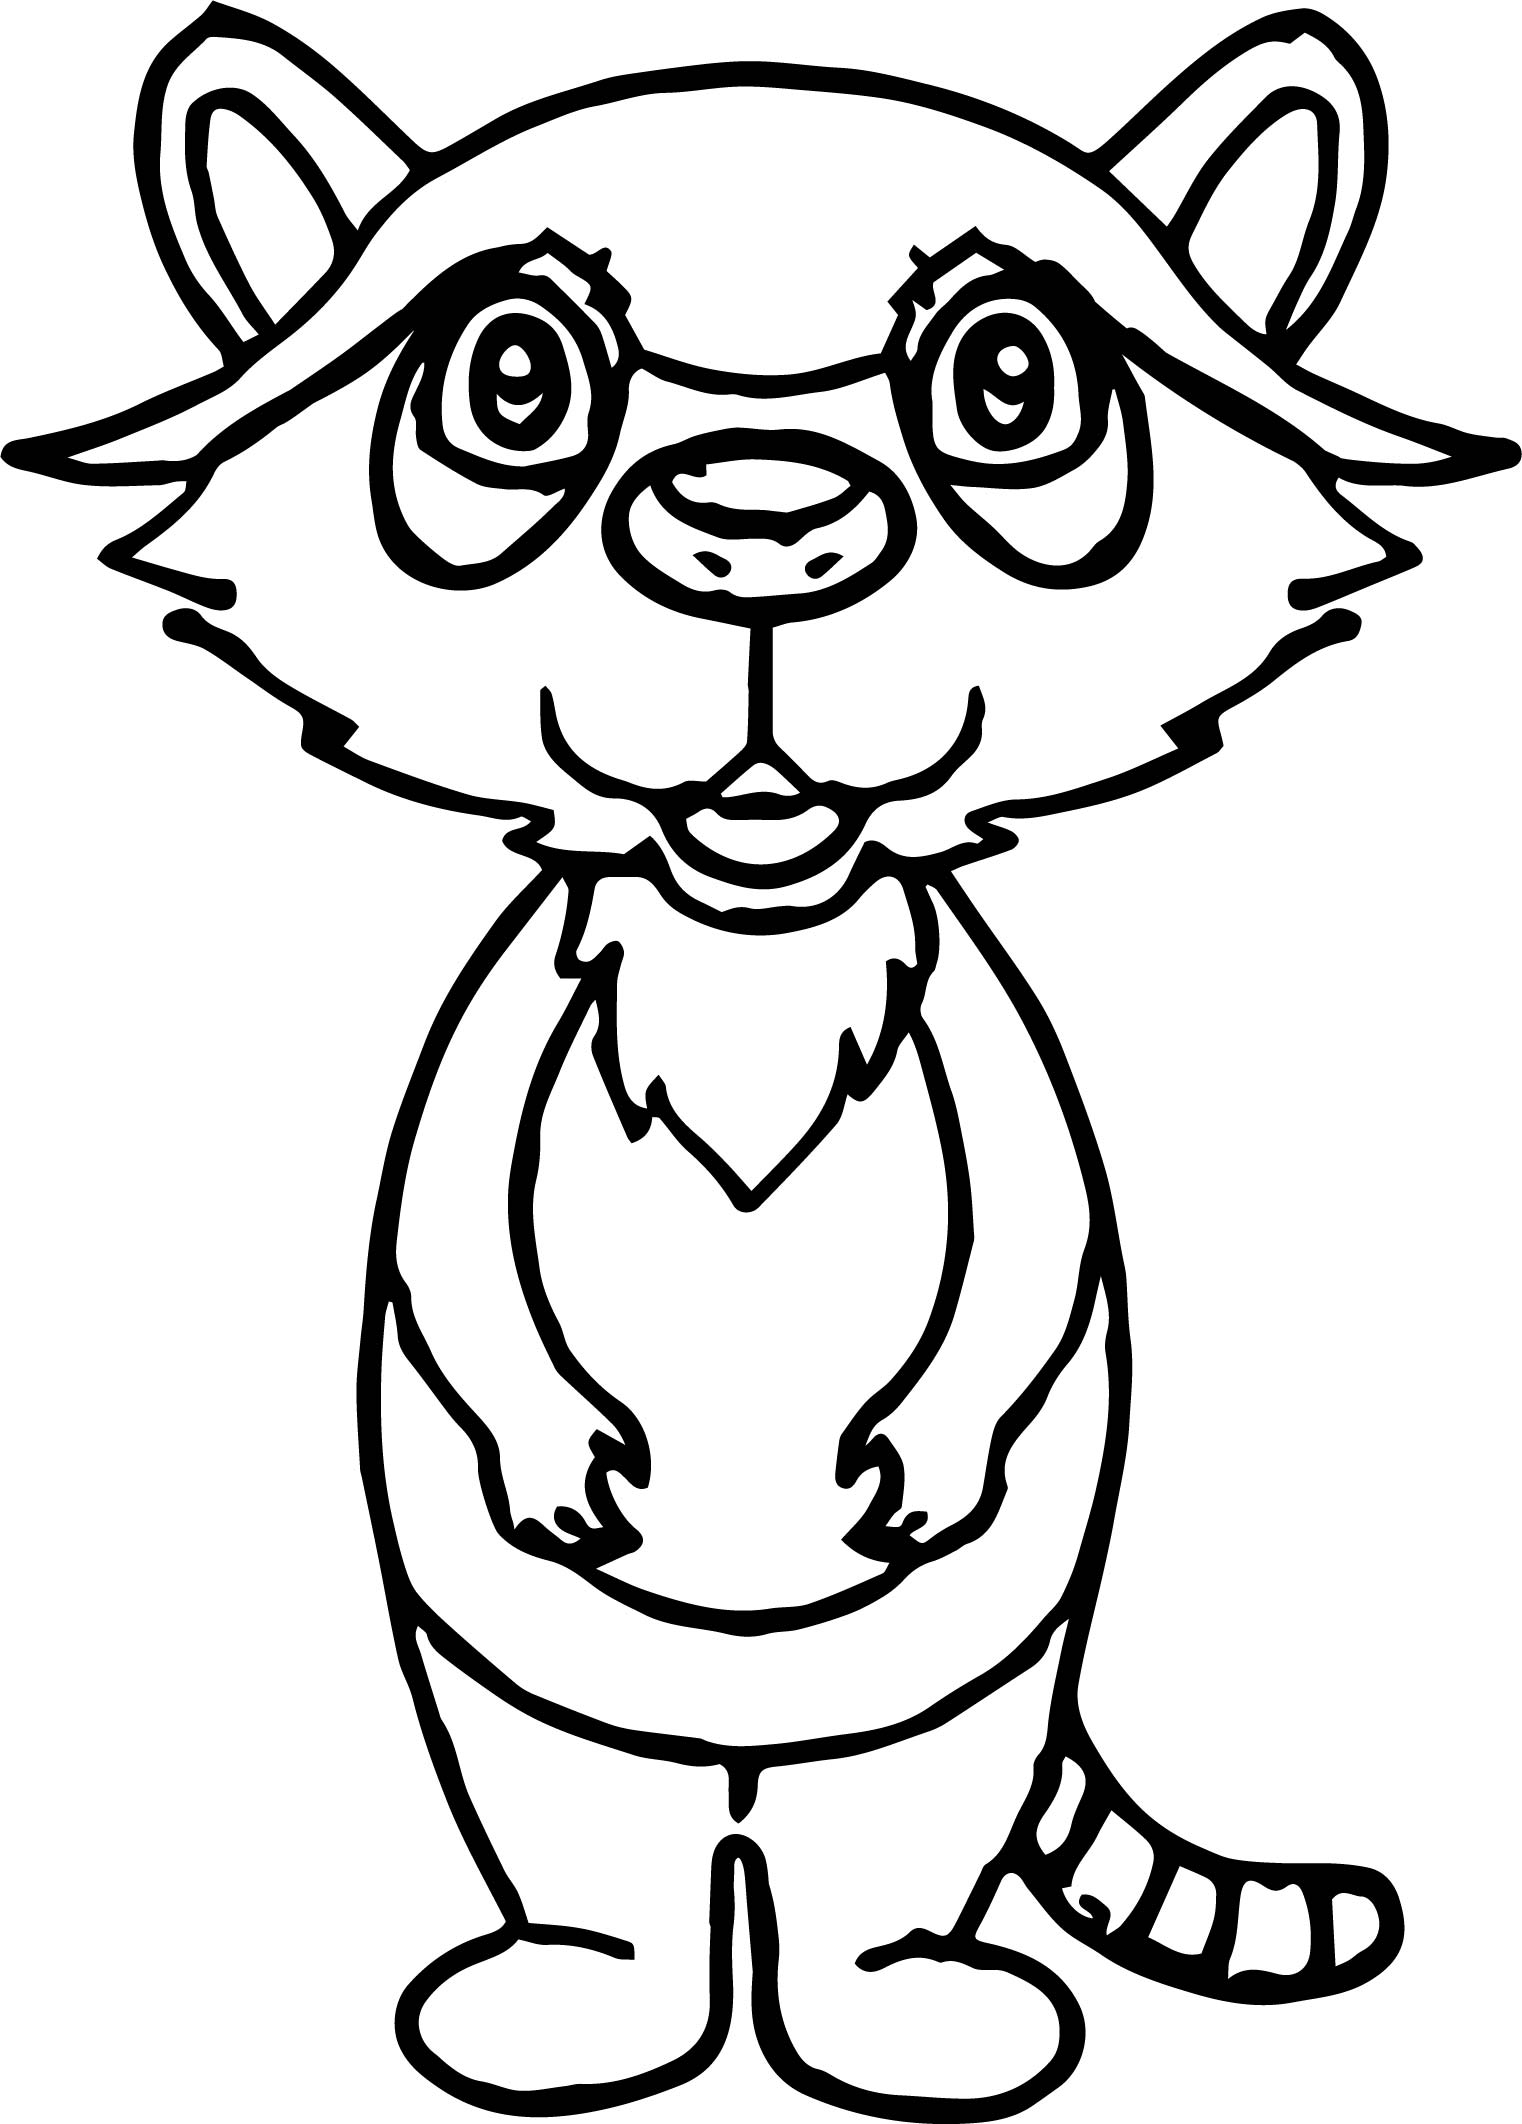 Raccoon Face Page Coloring Pages Raccoon Face Coloring Pages